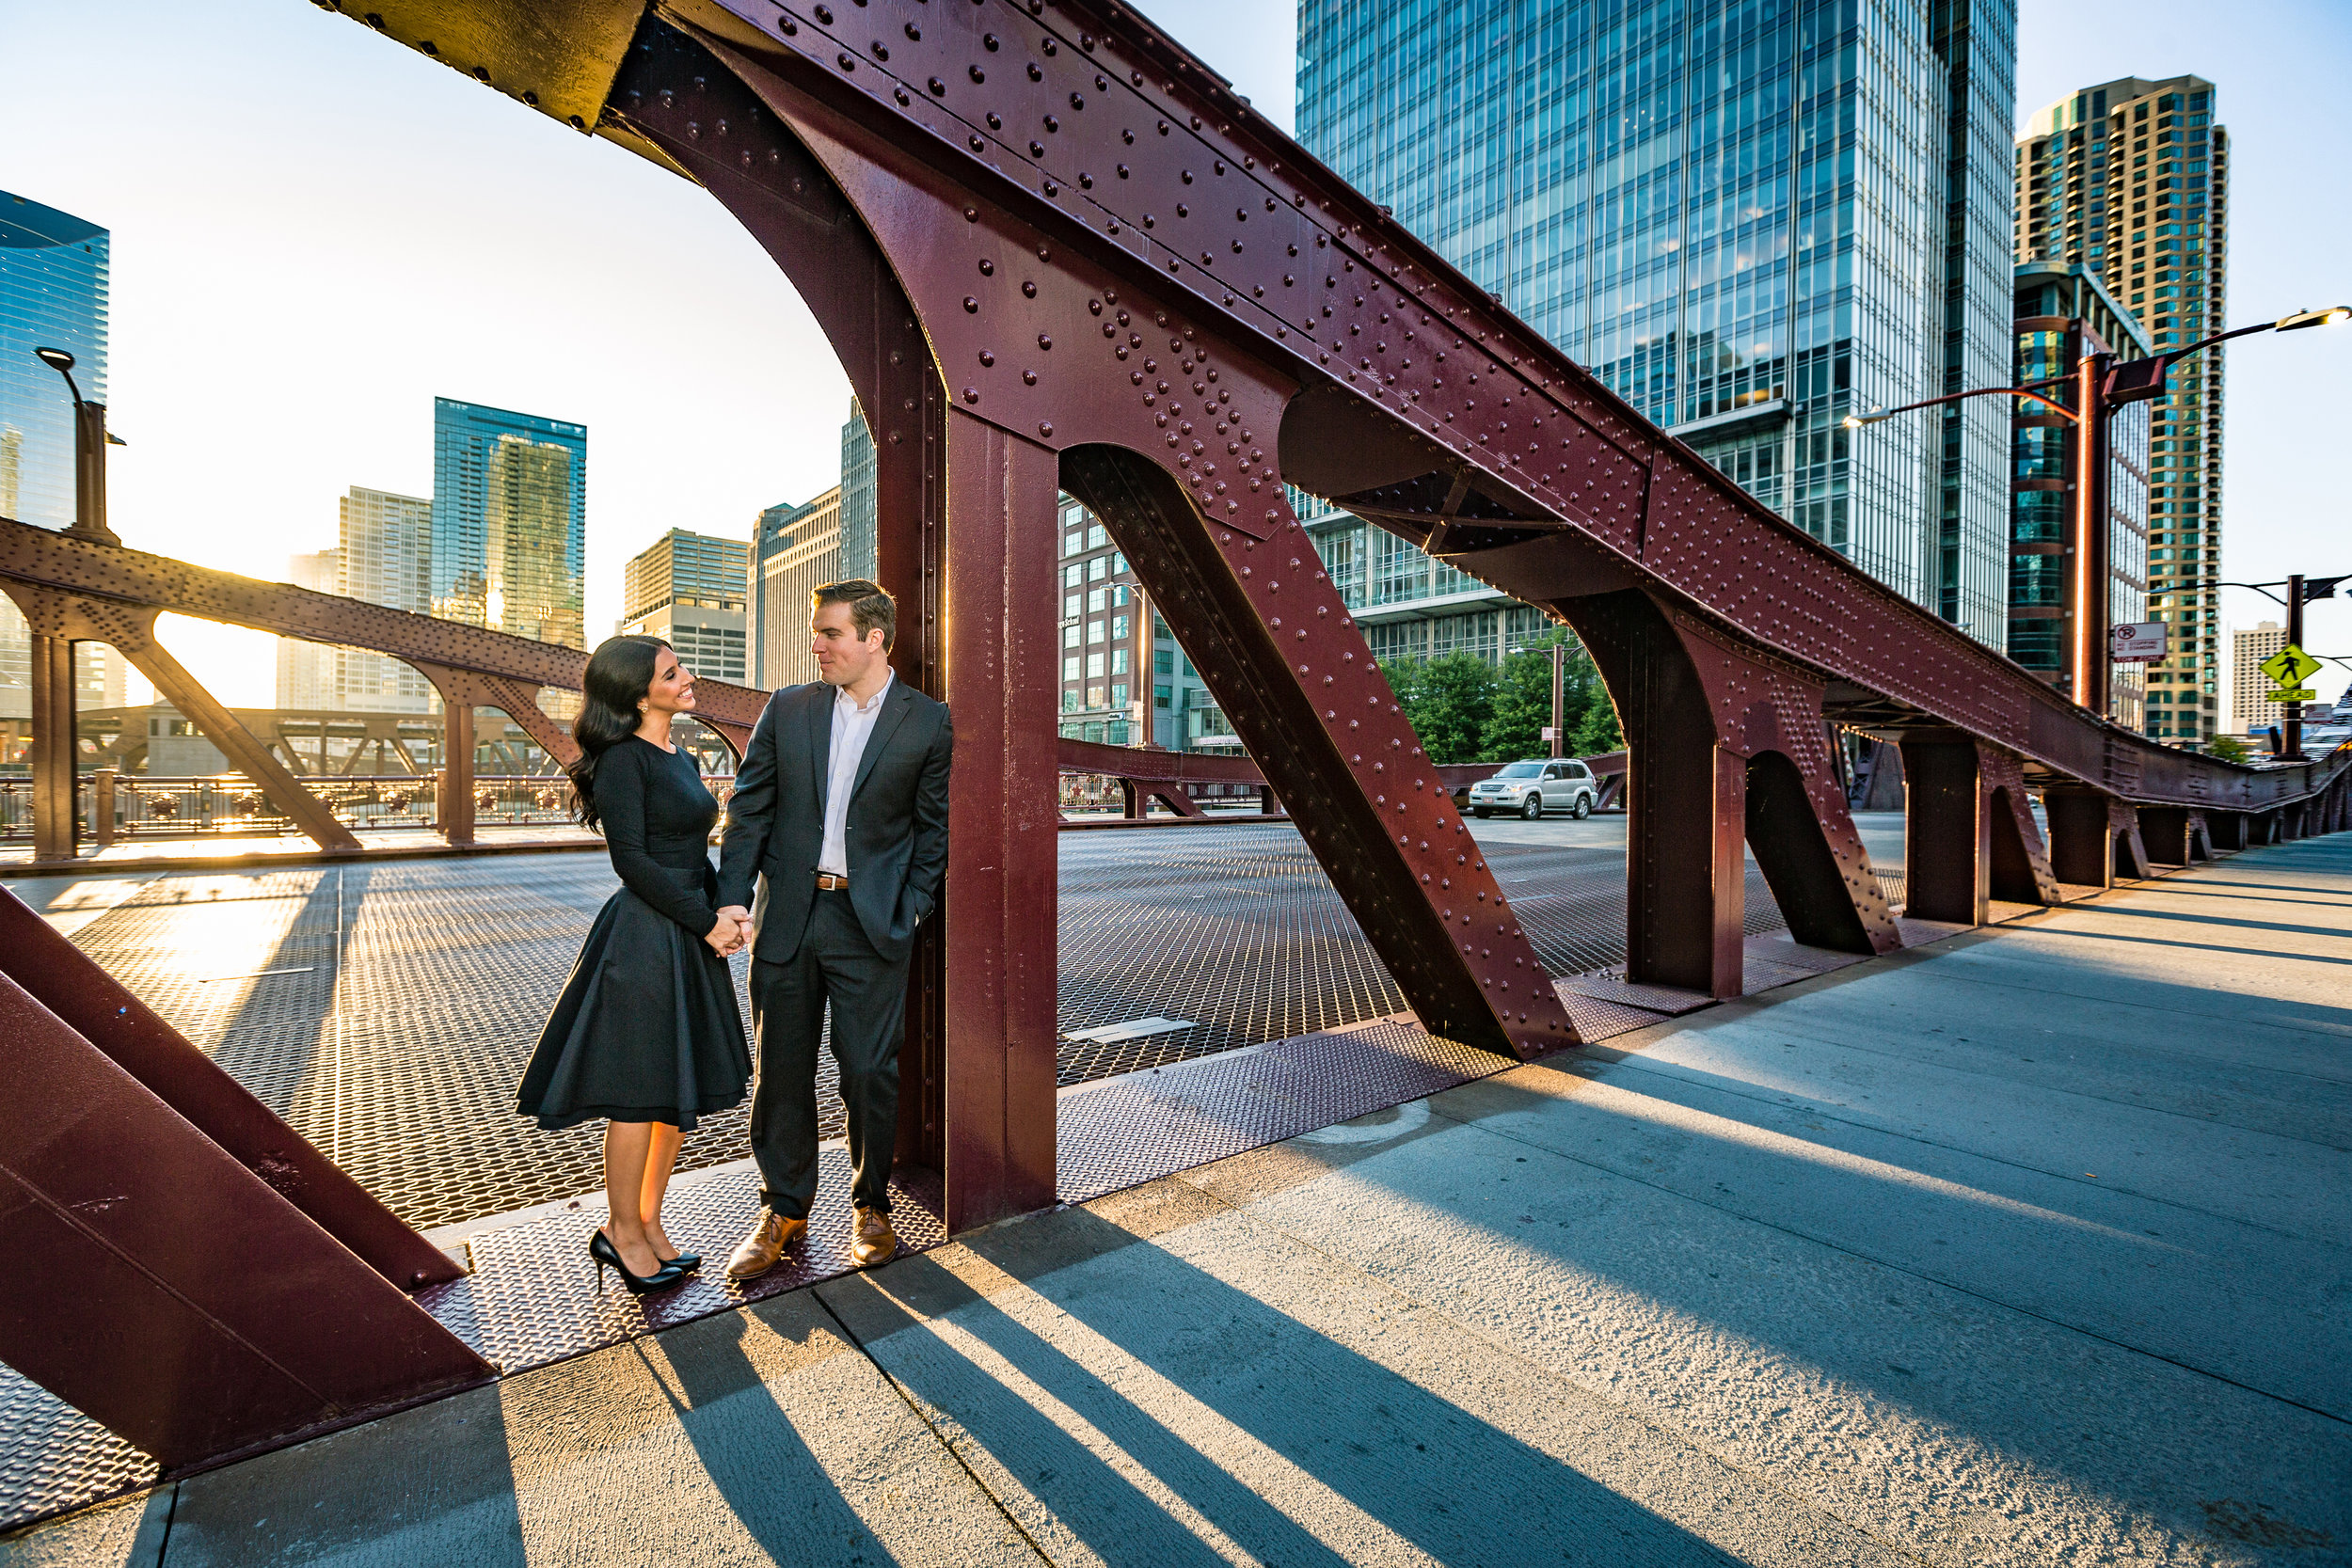 chicago engagement   Gabriella + Tom by Peer Canvas Photography & Films 060.JPG